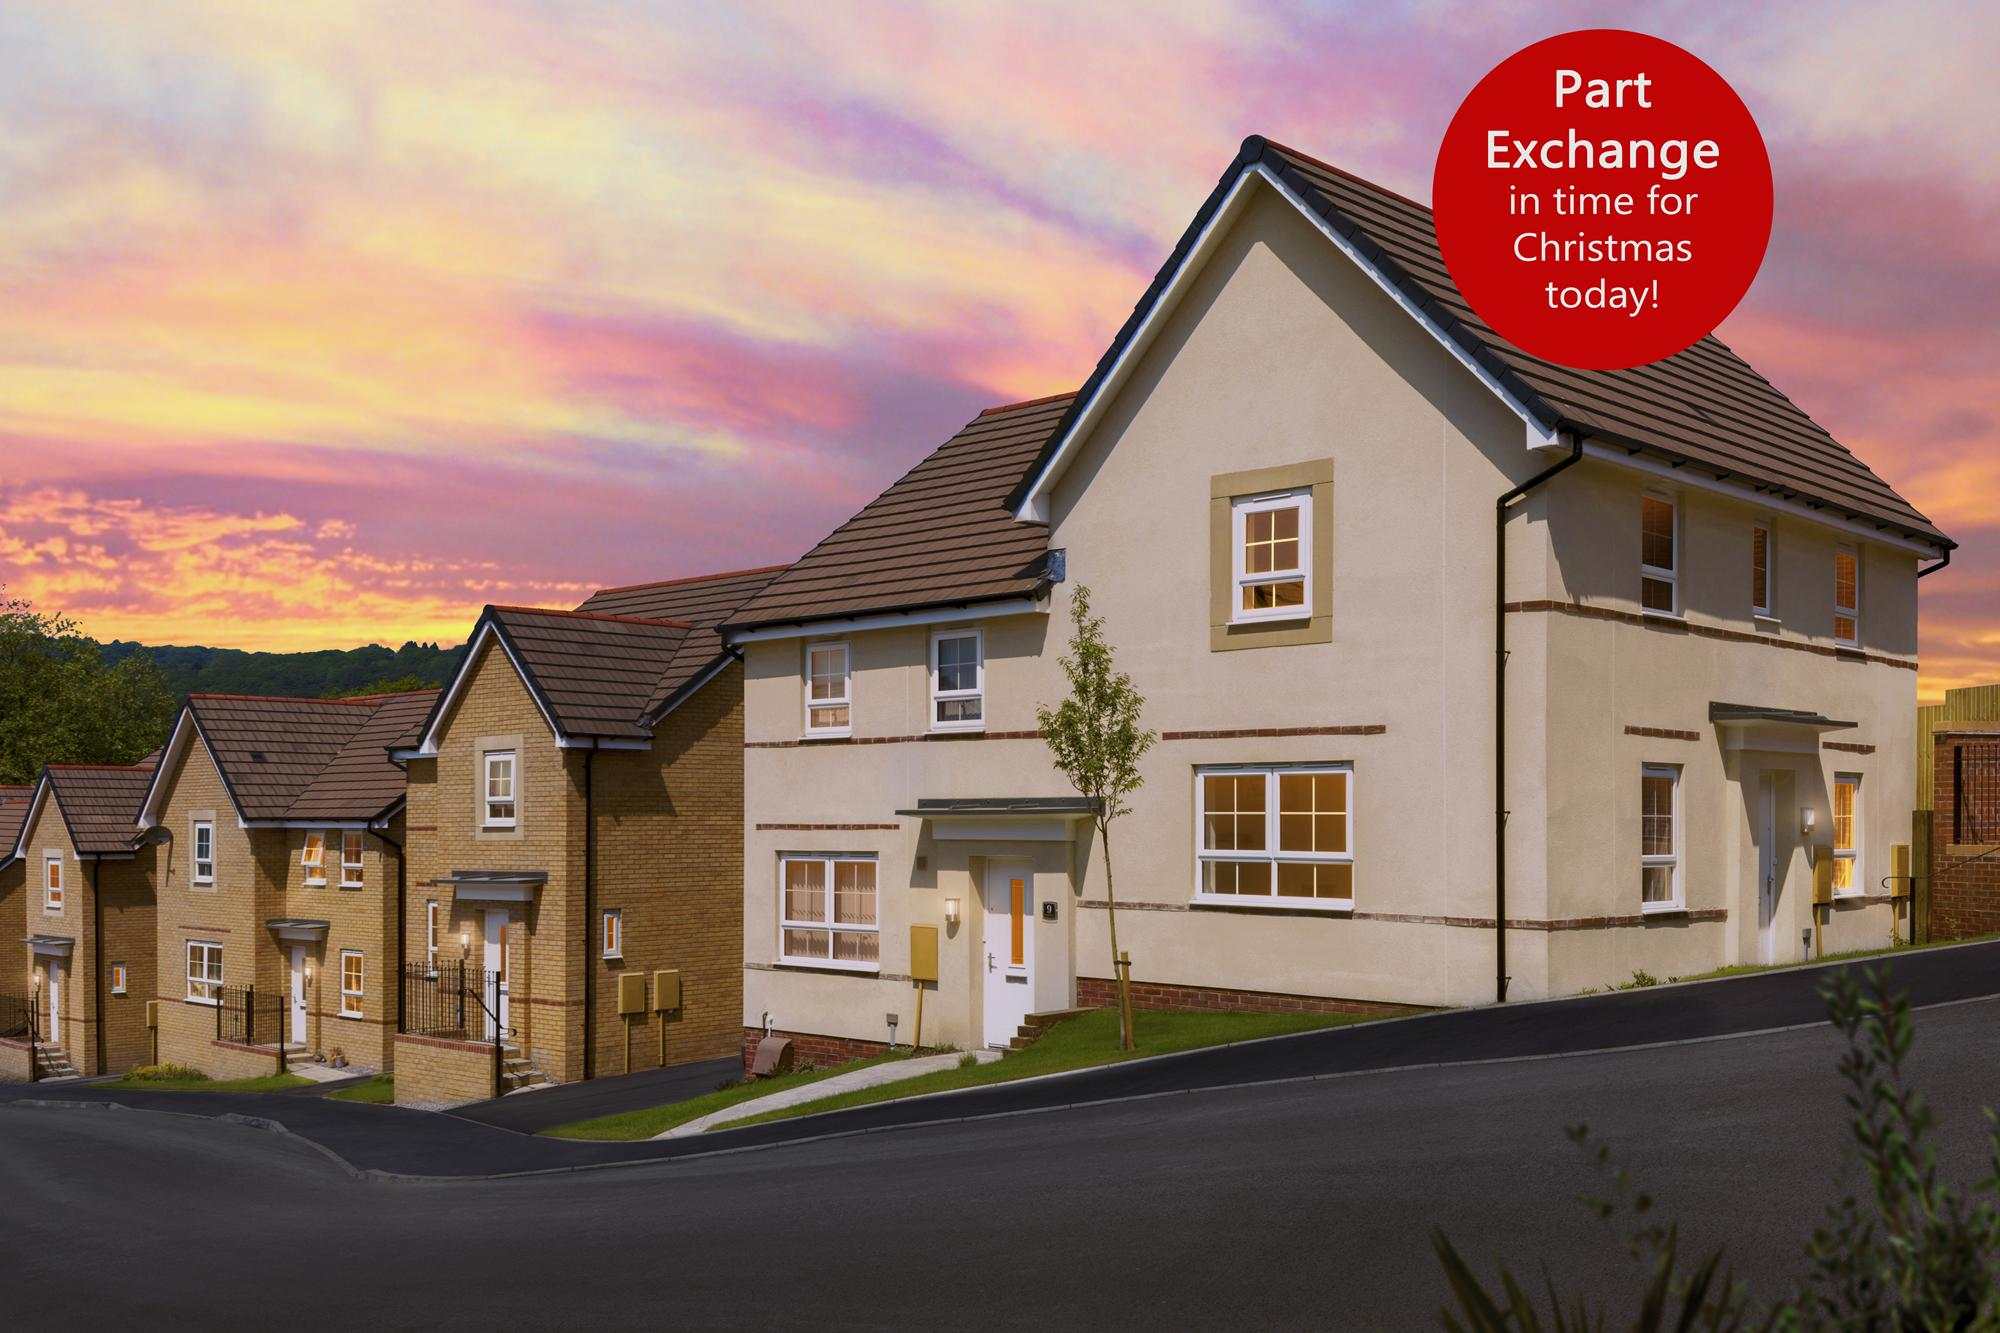 New Build Homes in Tonna